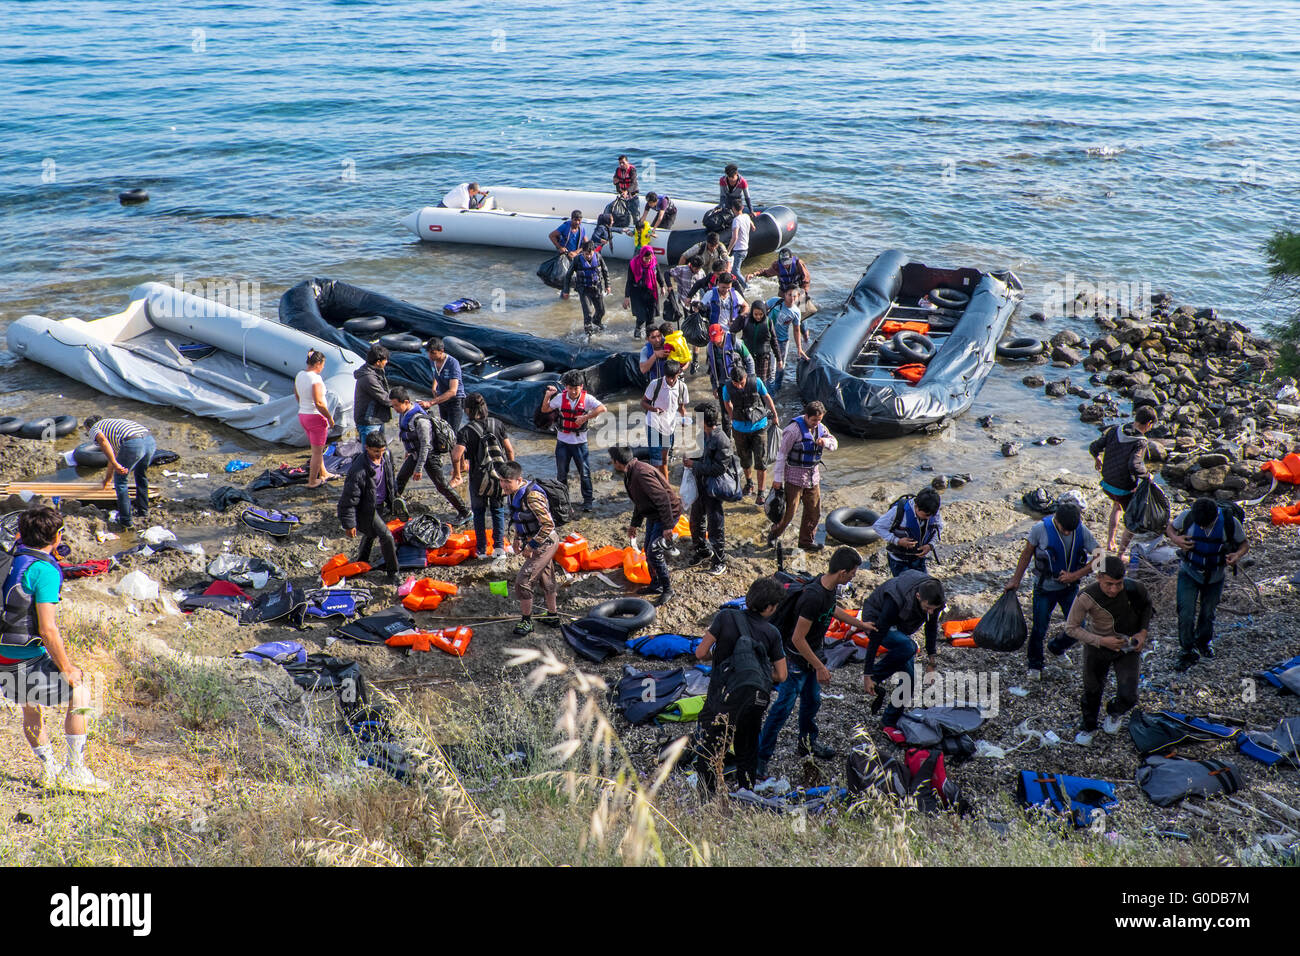 Four rafts of refugees crossing from Turkey to Greece arrive on the northern shore of the Greek island of Lesvos - Stock Image